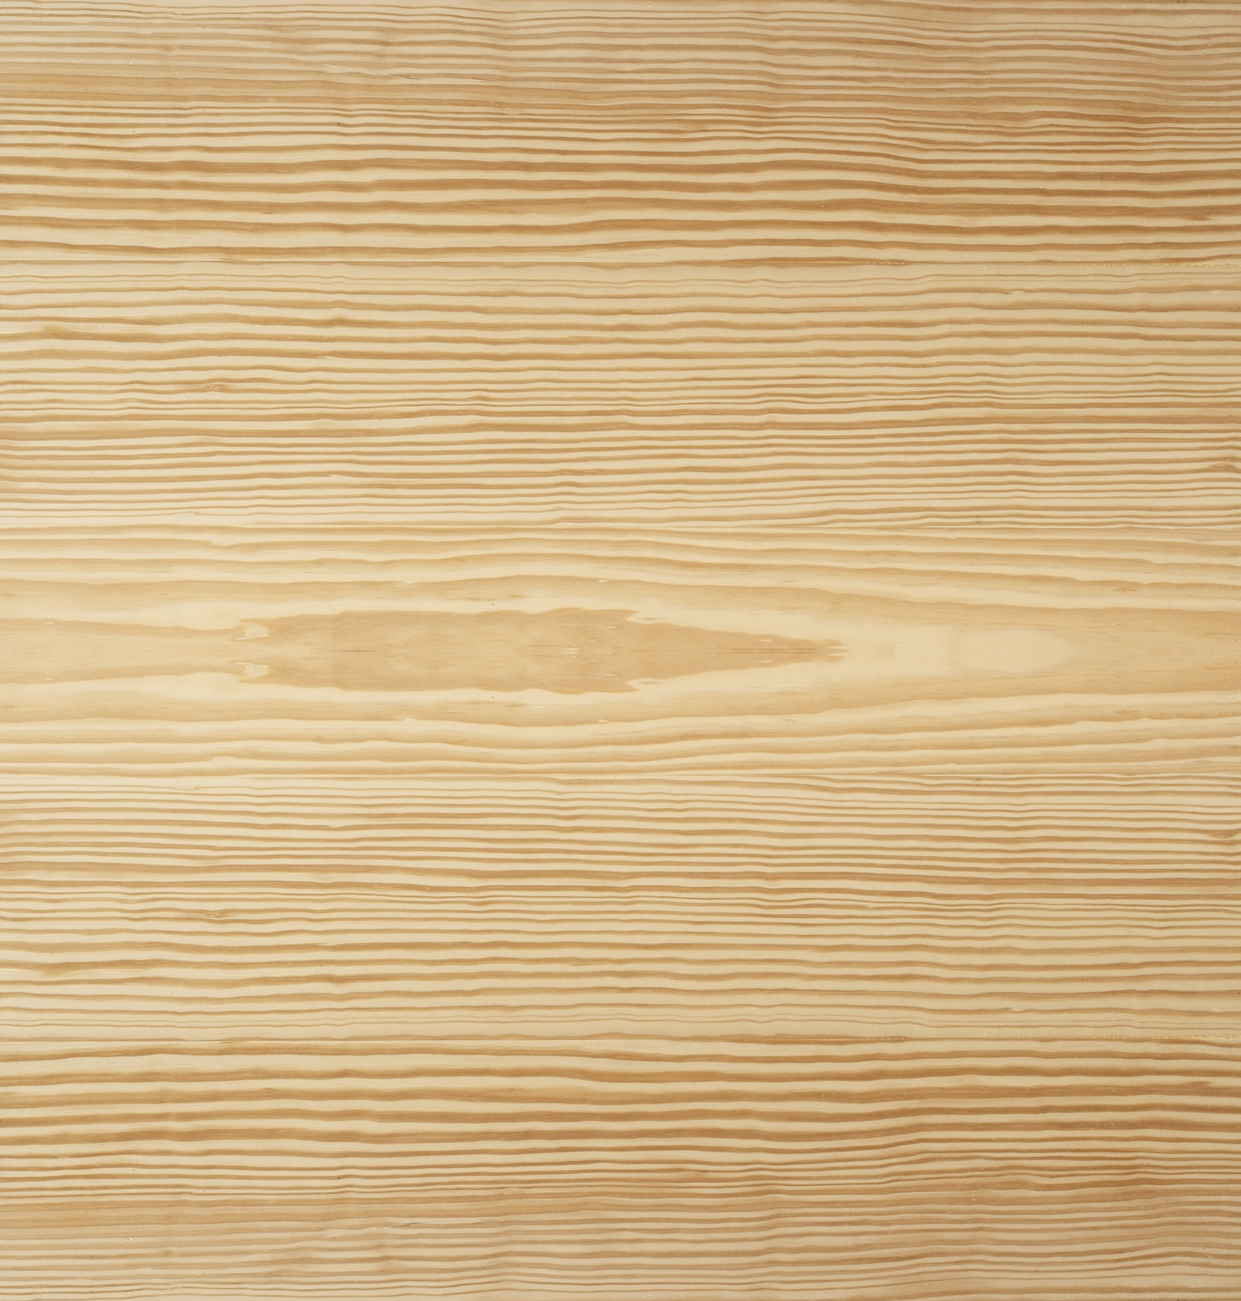 Free download Pine Wood texture and Texture [1241x1301] for your